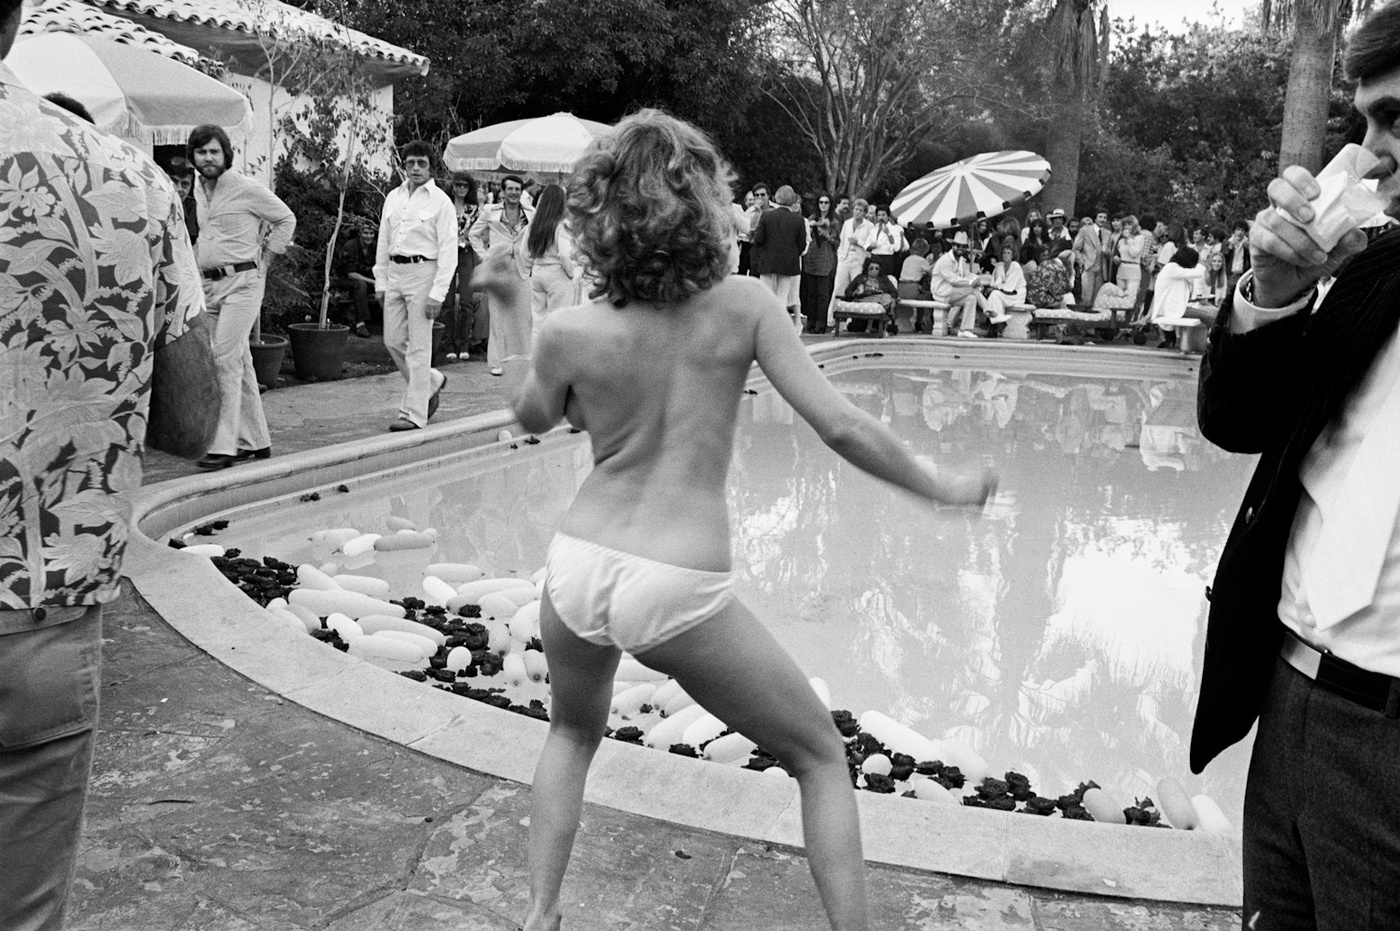 A Beverly Hills Party To Remember,1977 - I think John Rockwell invited me to this party. It took place at a large mansion directly behind The Beverly Hills Hotel. I was the youngest guest. Not even old enough to drink. Right before I spilt, this girl came out in front of me and took off her clothes and started to dance. Look closely at the guy on the left walking over to the girl, that is Burt the party crasher. He was legendary and never missed a party!